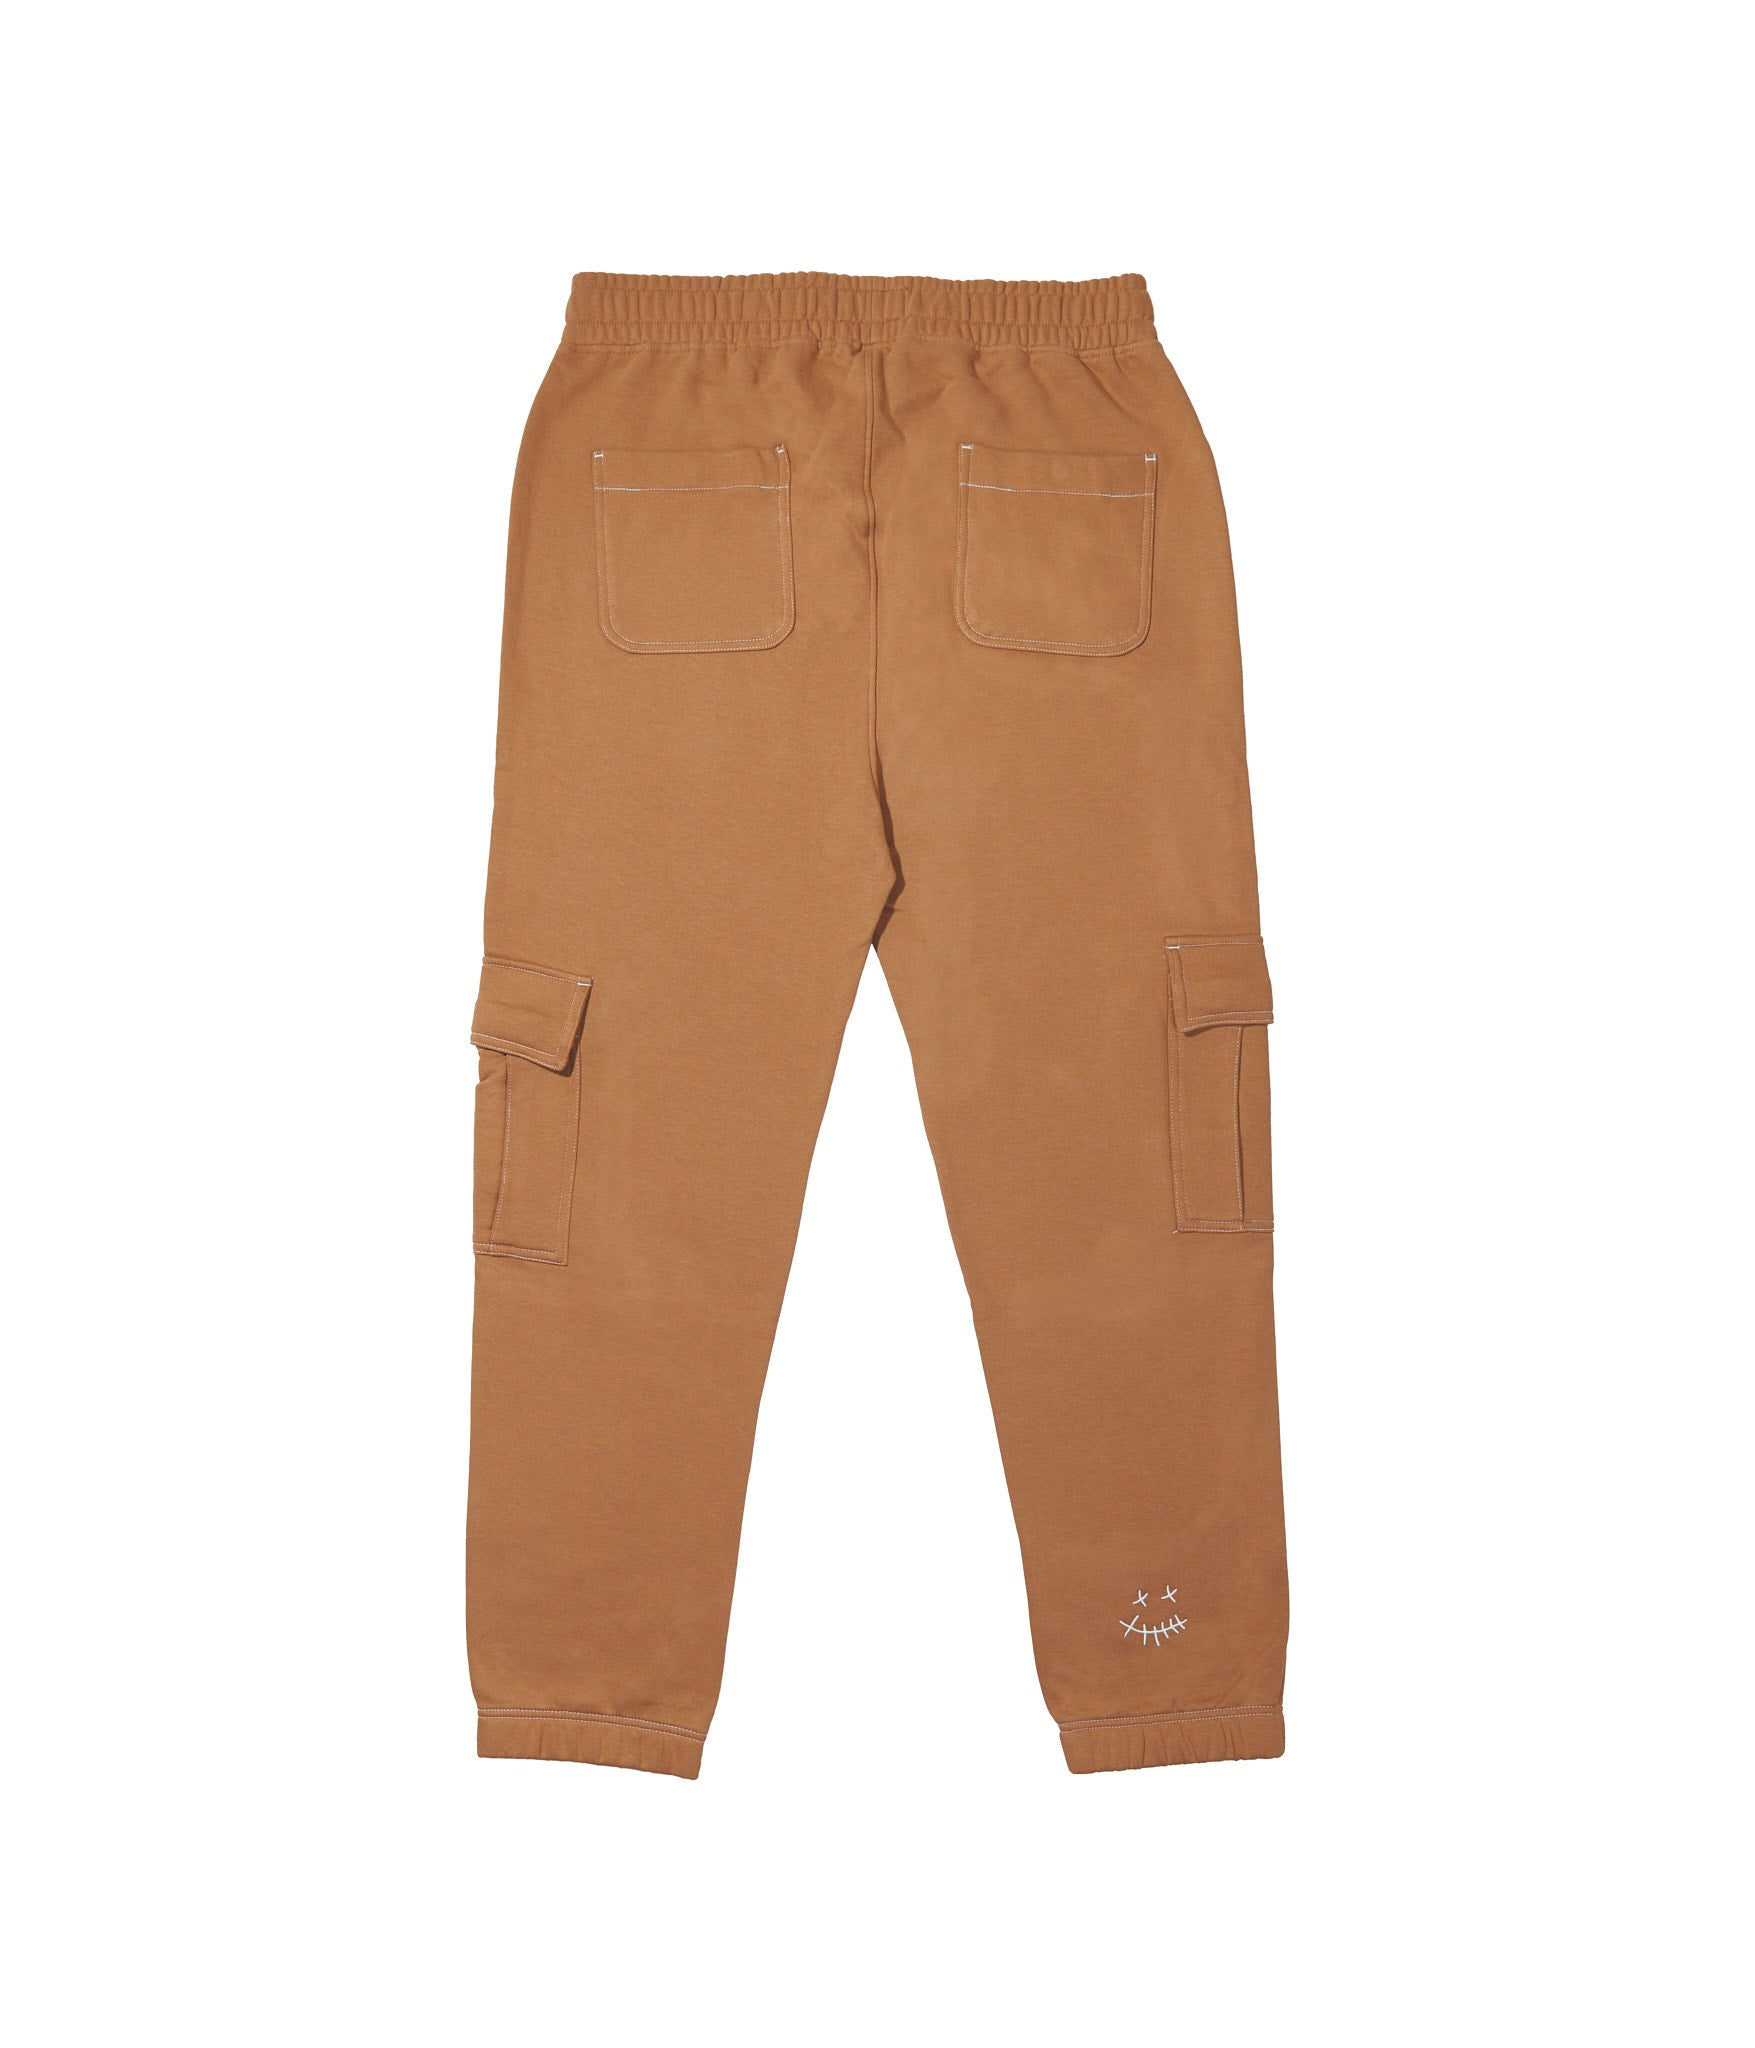 'TILL FOREVER' TRACKPANTS (BISCOFF BROWN)